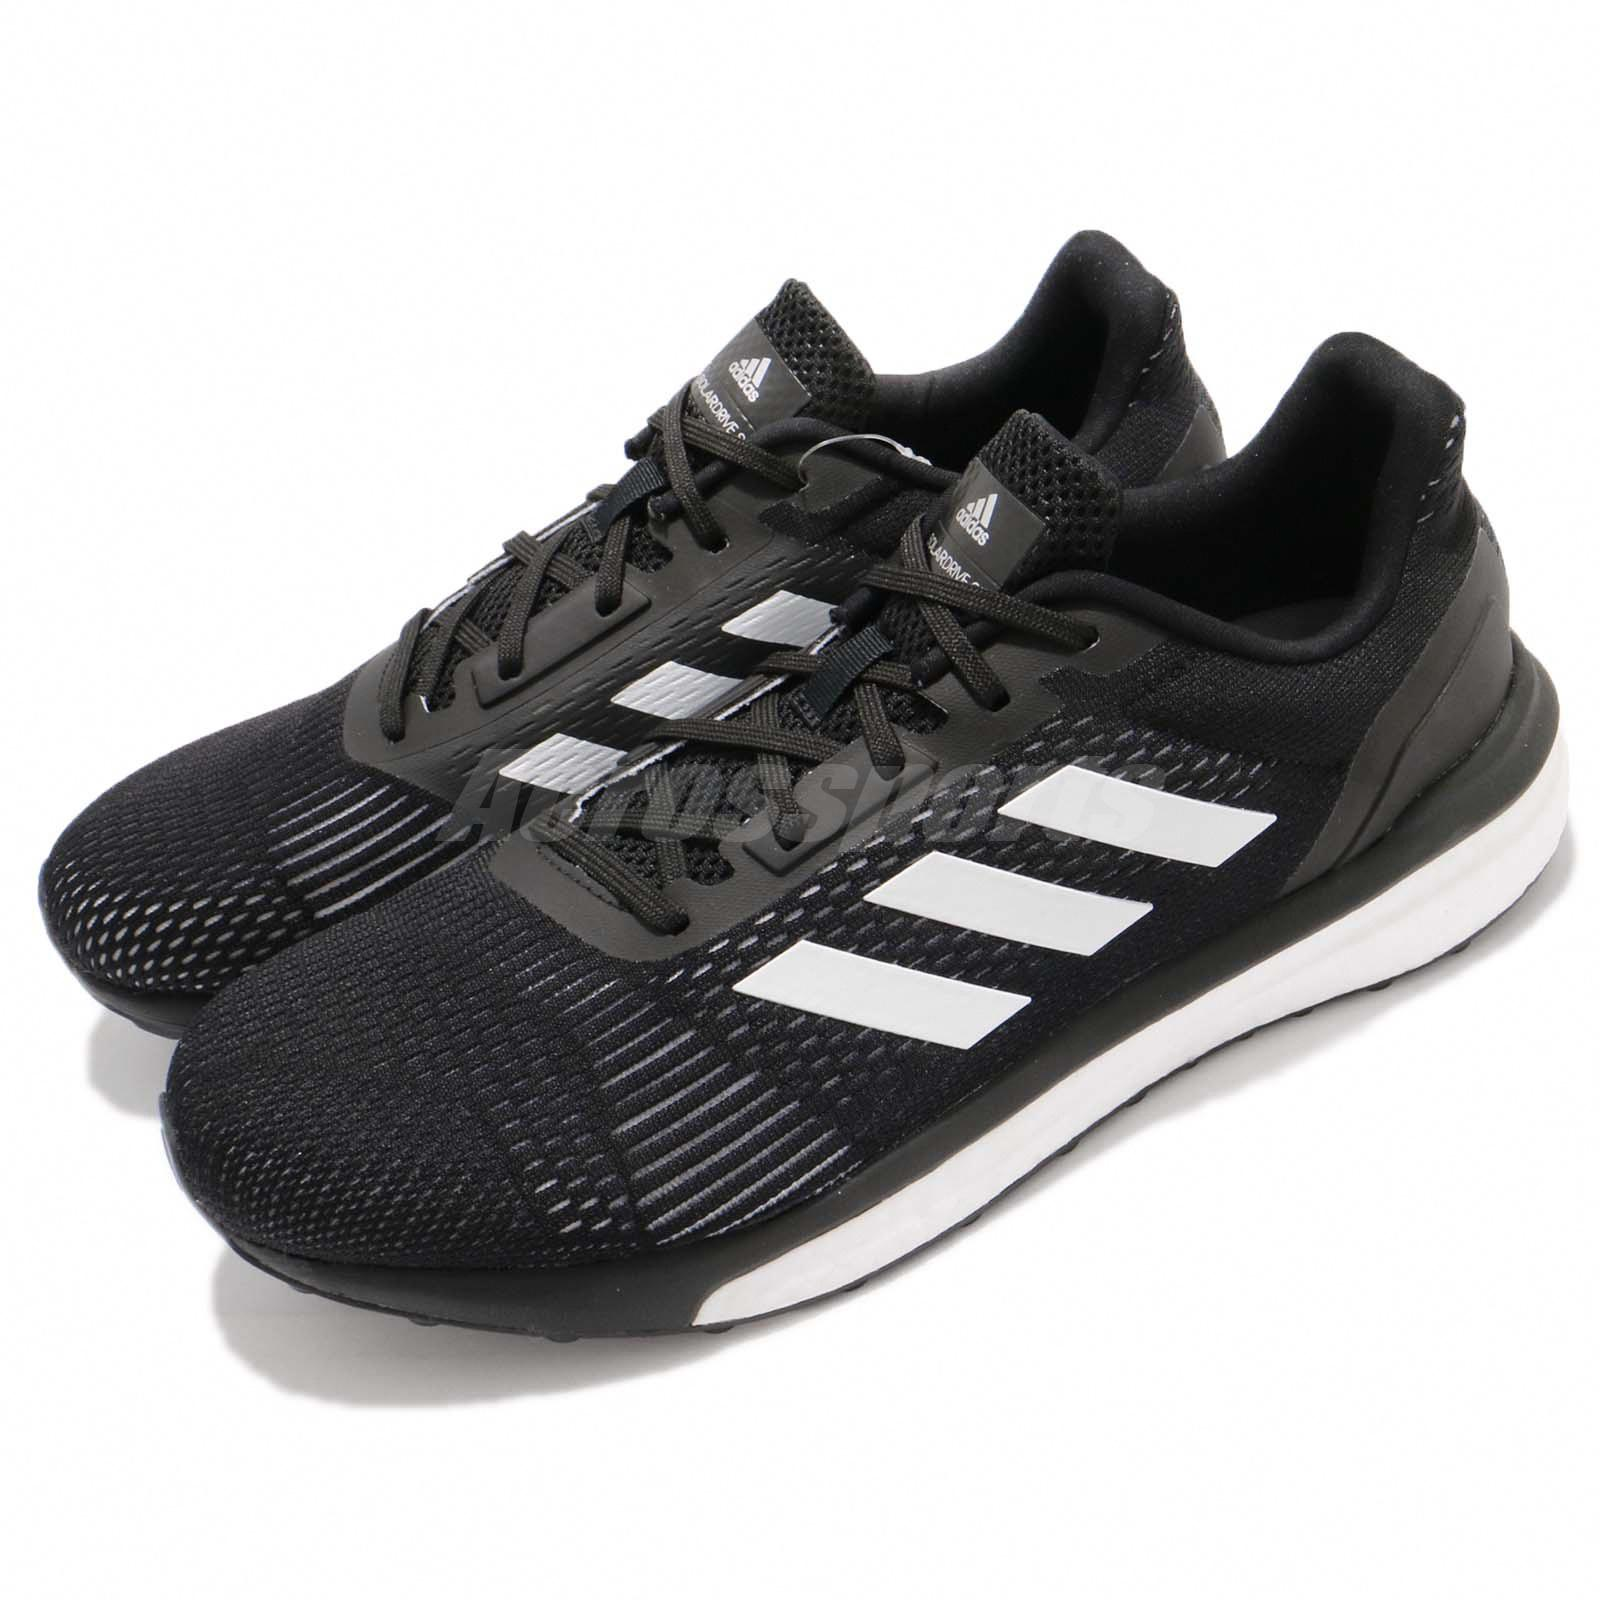 09d639539143 adidas Solar Drive ST M Boost Black White Men Running Training Shoes ...